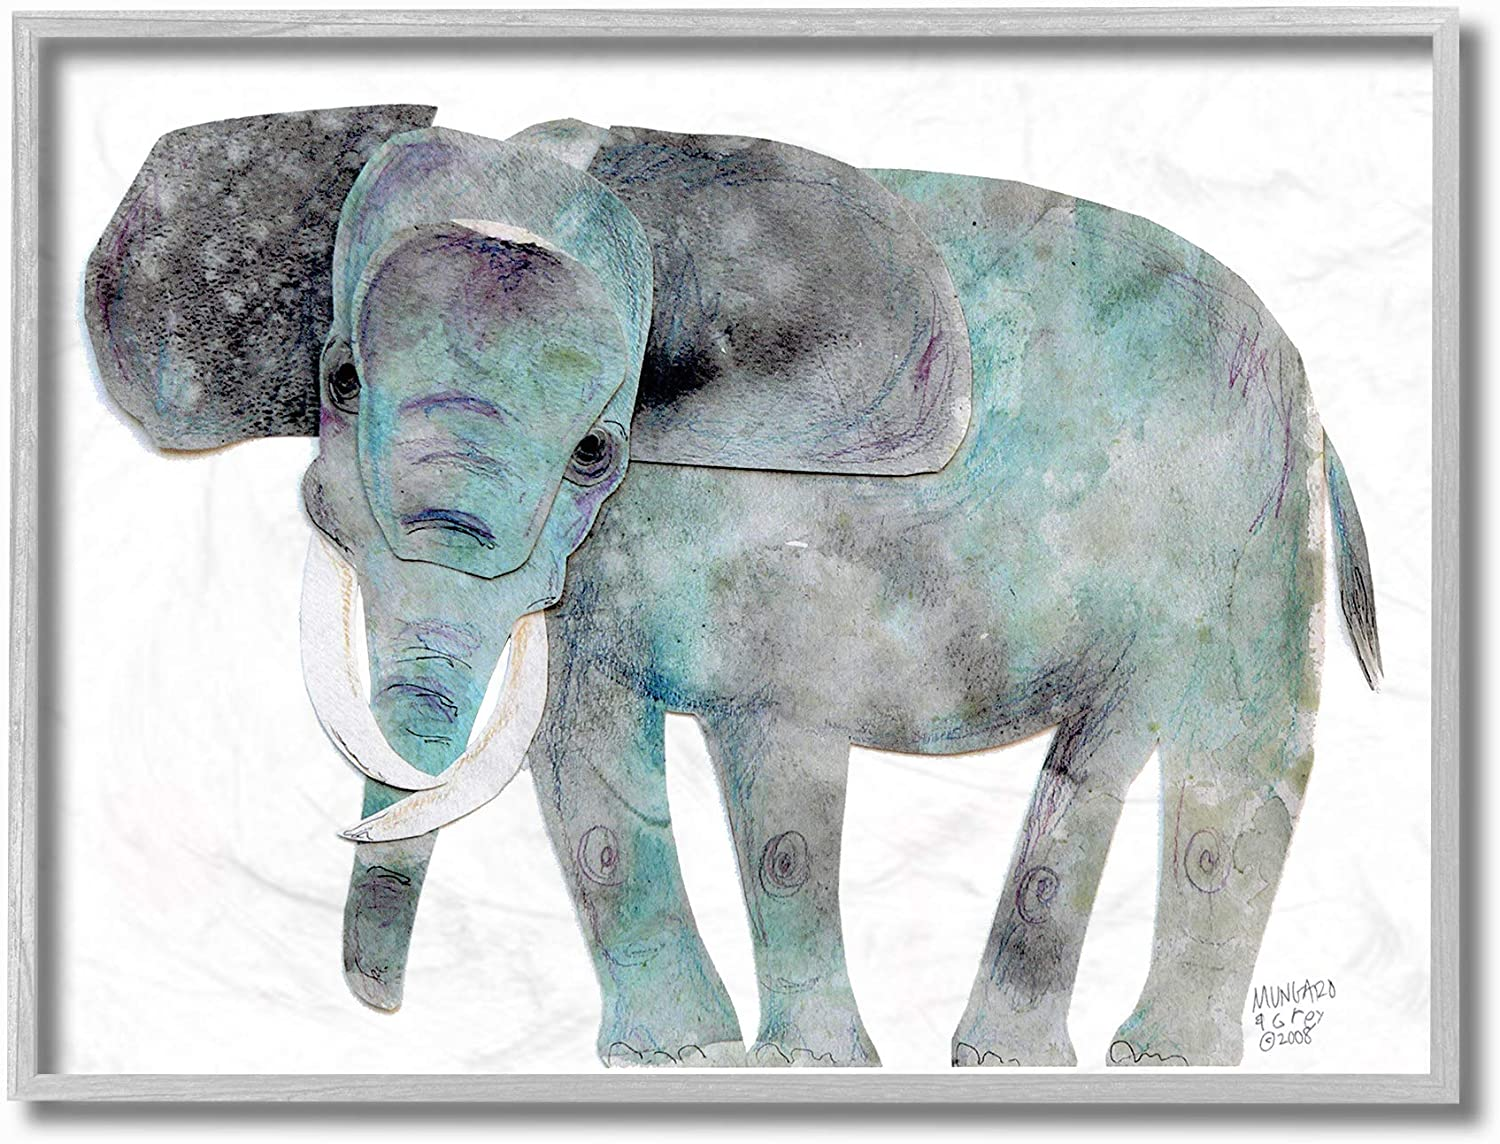 The Stupell Home Decor Watercolor Cutout Collage Elephant Framed Giclee Texturized Art, Multicolor